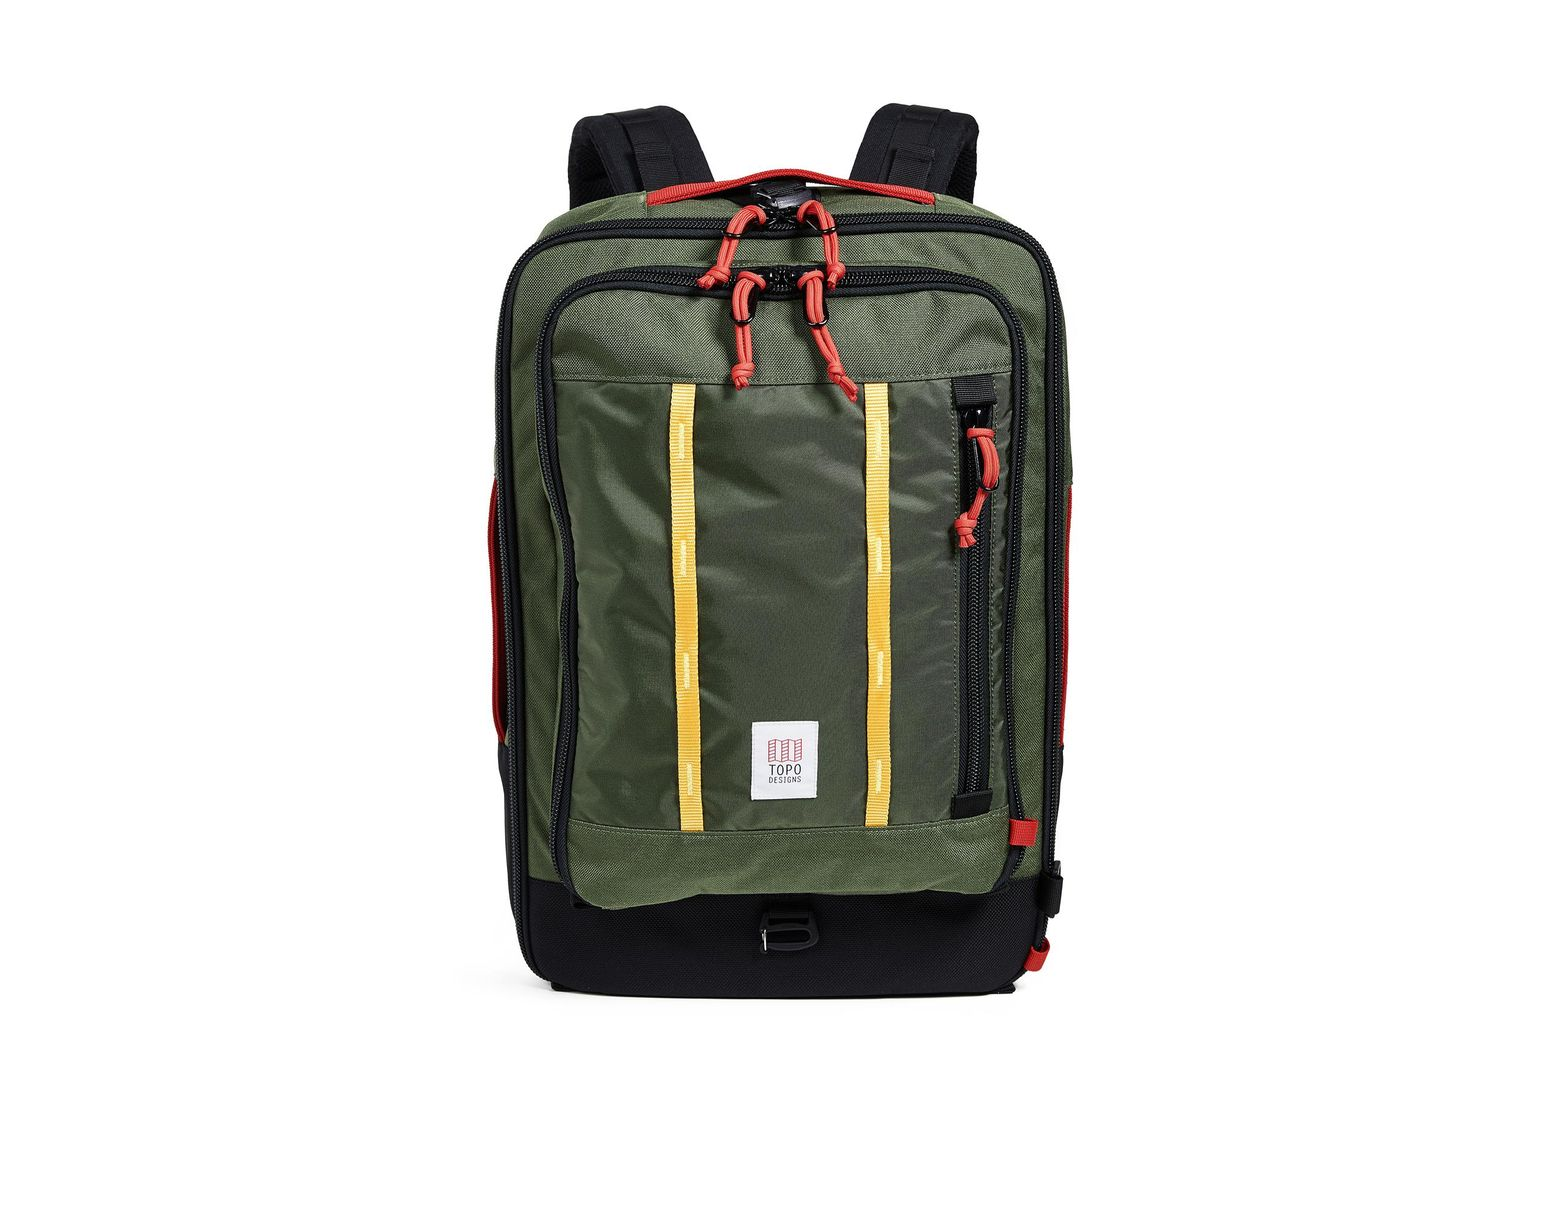 847c9bcc2 Topo Designs Travel Bag 30l in Green for Men - Save 17% - Lyst